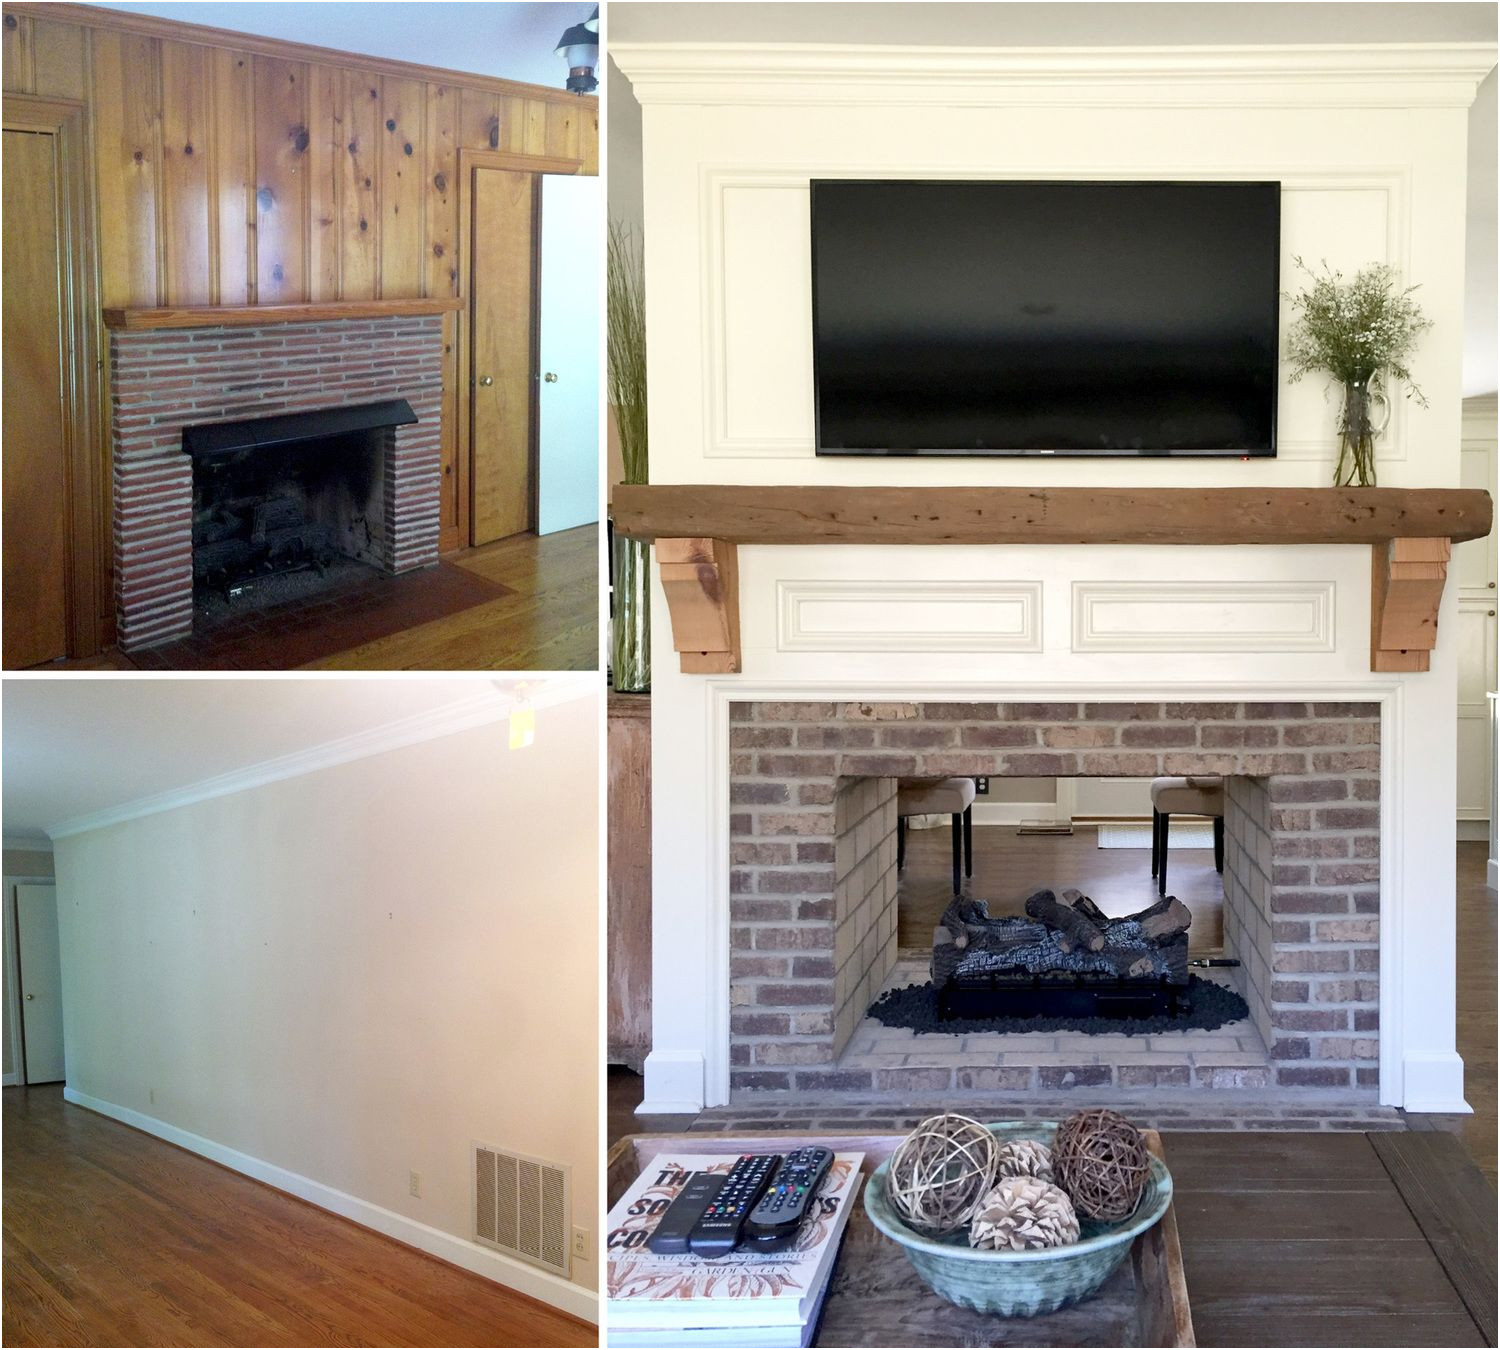 Brick Fireplace Remodeling Elegant Fireplace Renovation Converting A Single Sided Fireplace to